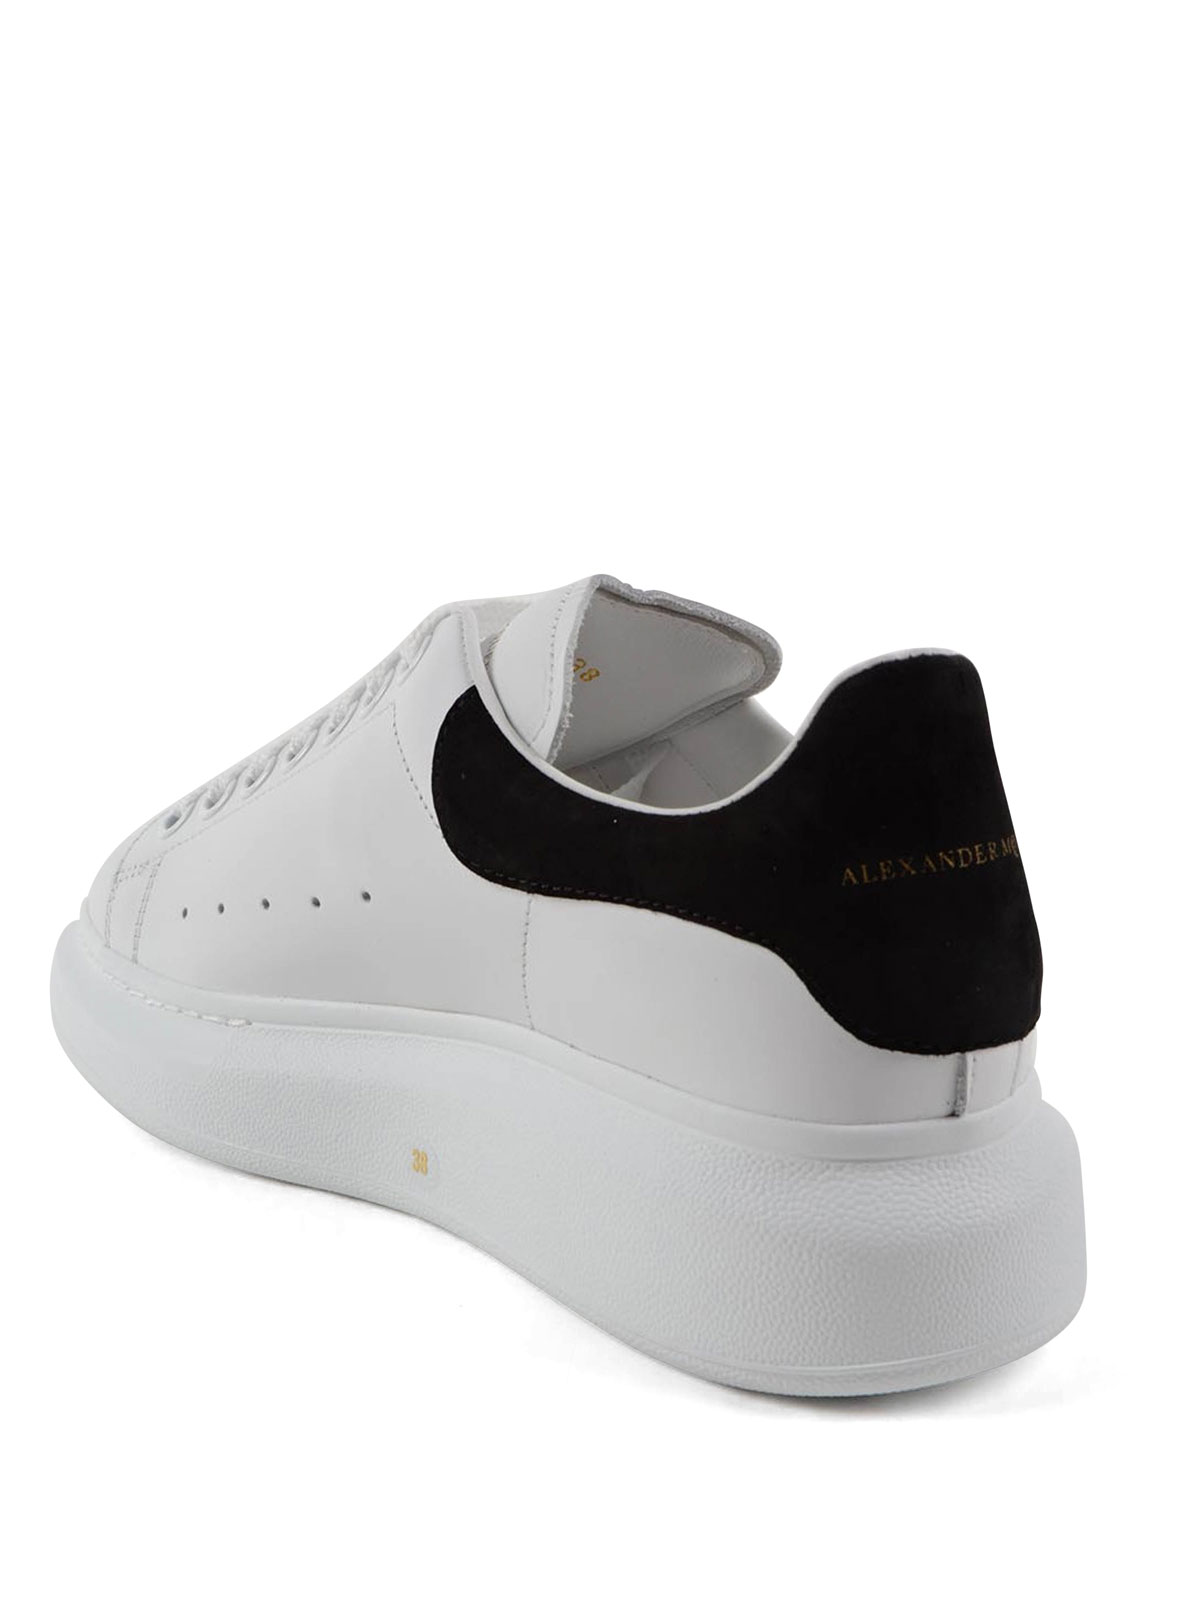 Alexander Mcqueen Maxi Sole Leather Sneakers Trainers